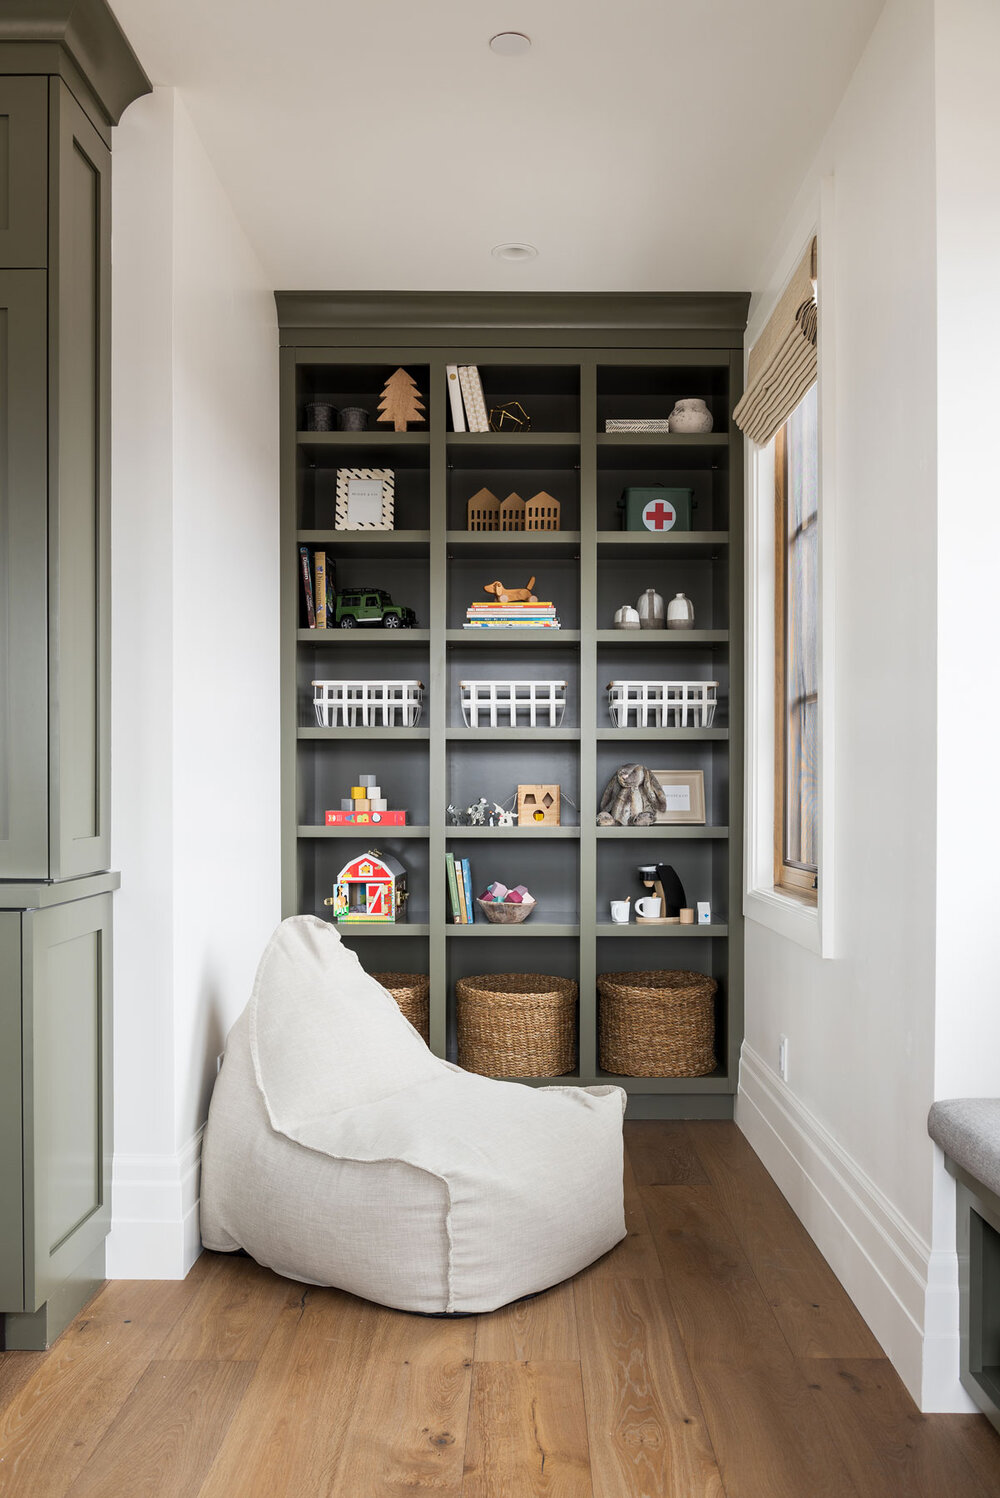 Our tips on Kid-Proofing Your Home